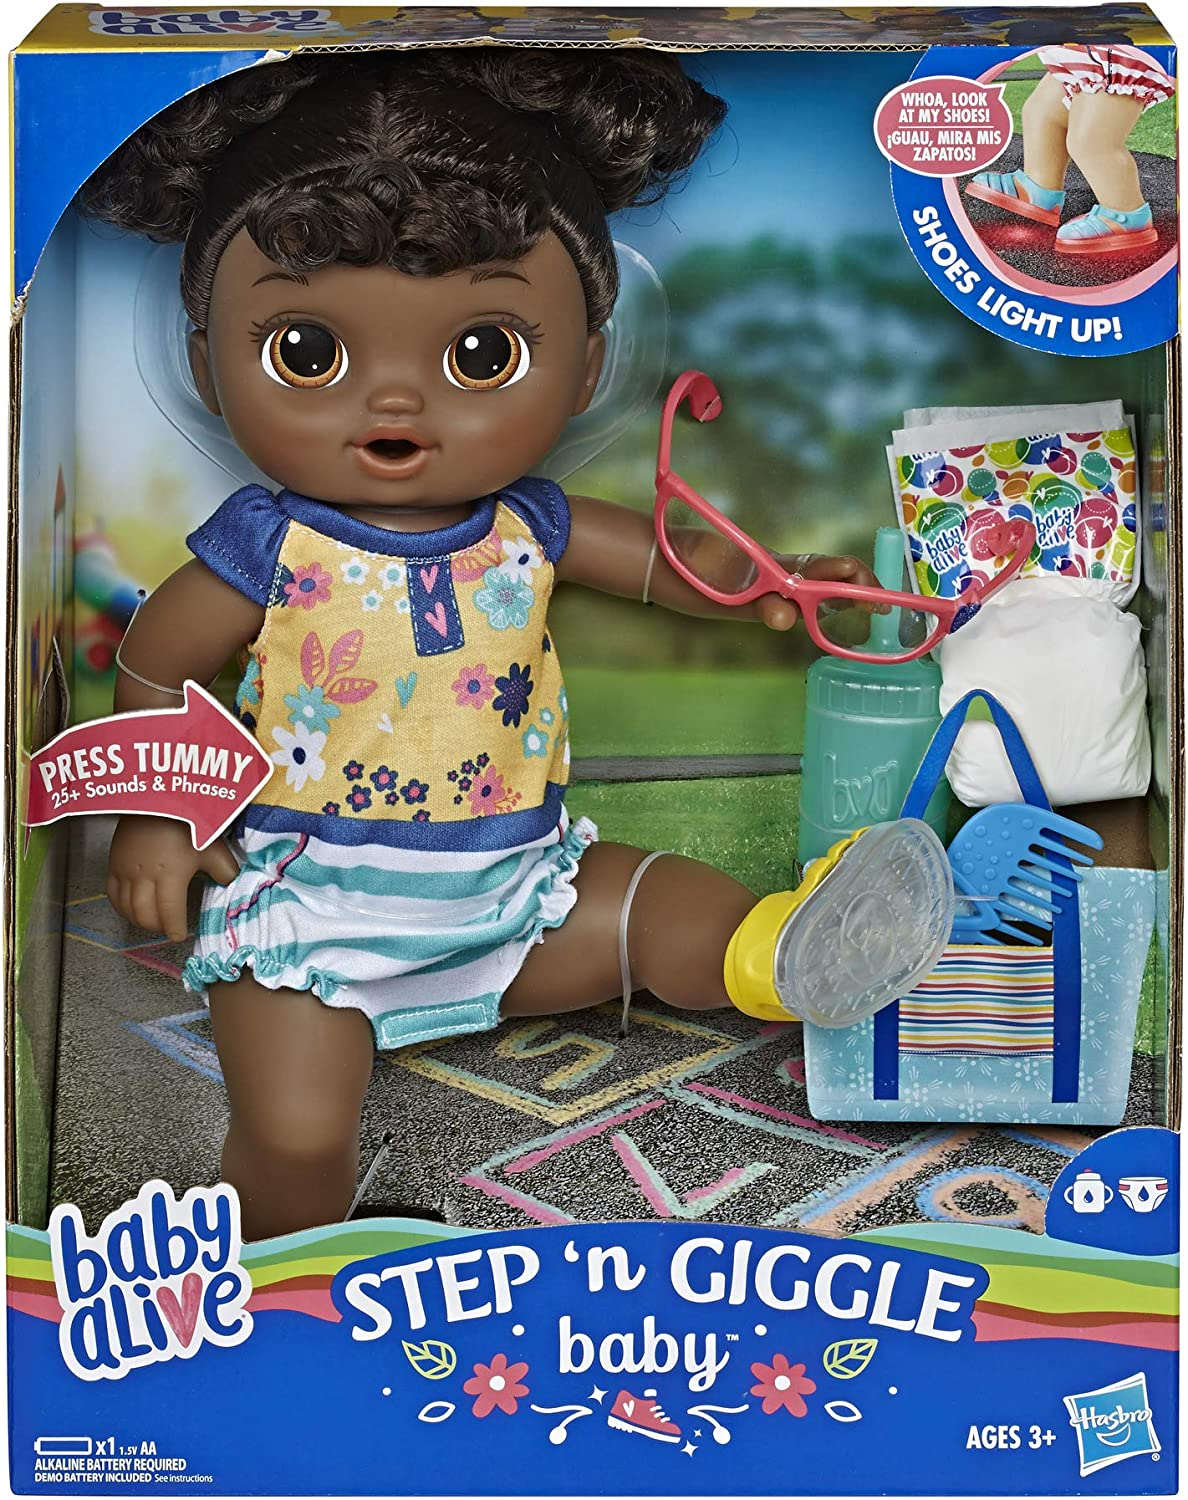 Amazon Com Baby Alive Step N Giggle Baby Black Hair Doll With Light Up Shoes Responds With 25 Sounds Phrases Drinks Wets Toy For Kids Ages 3 Years Old Up Toys